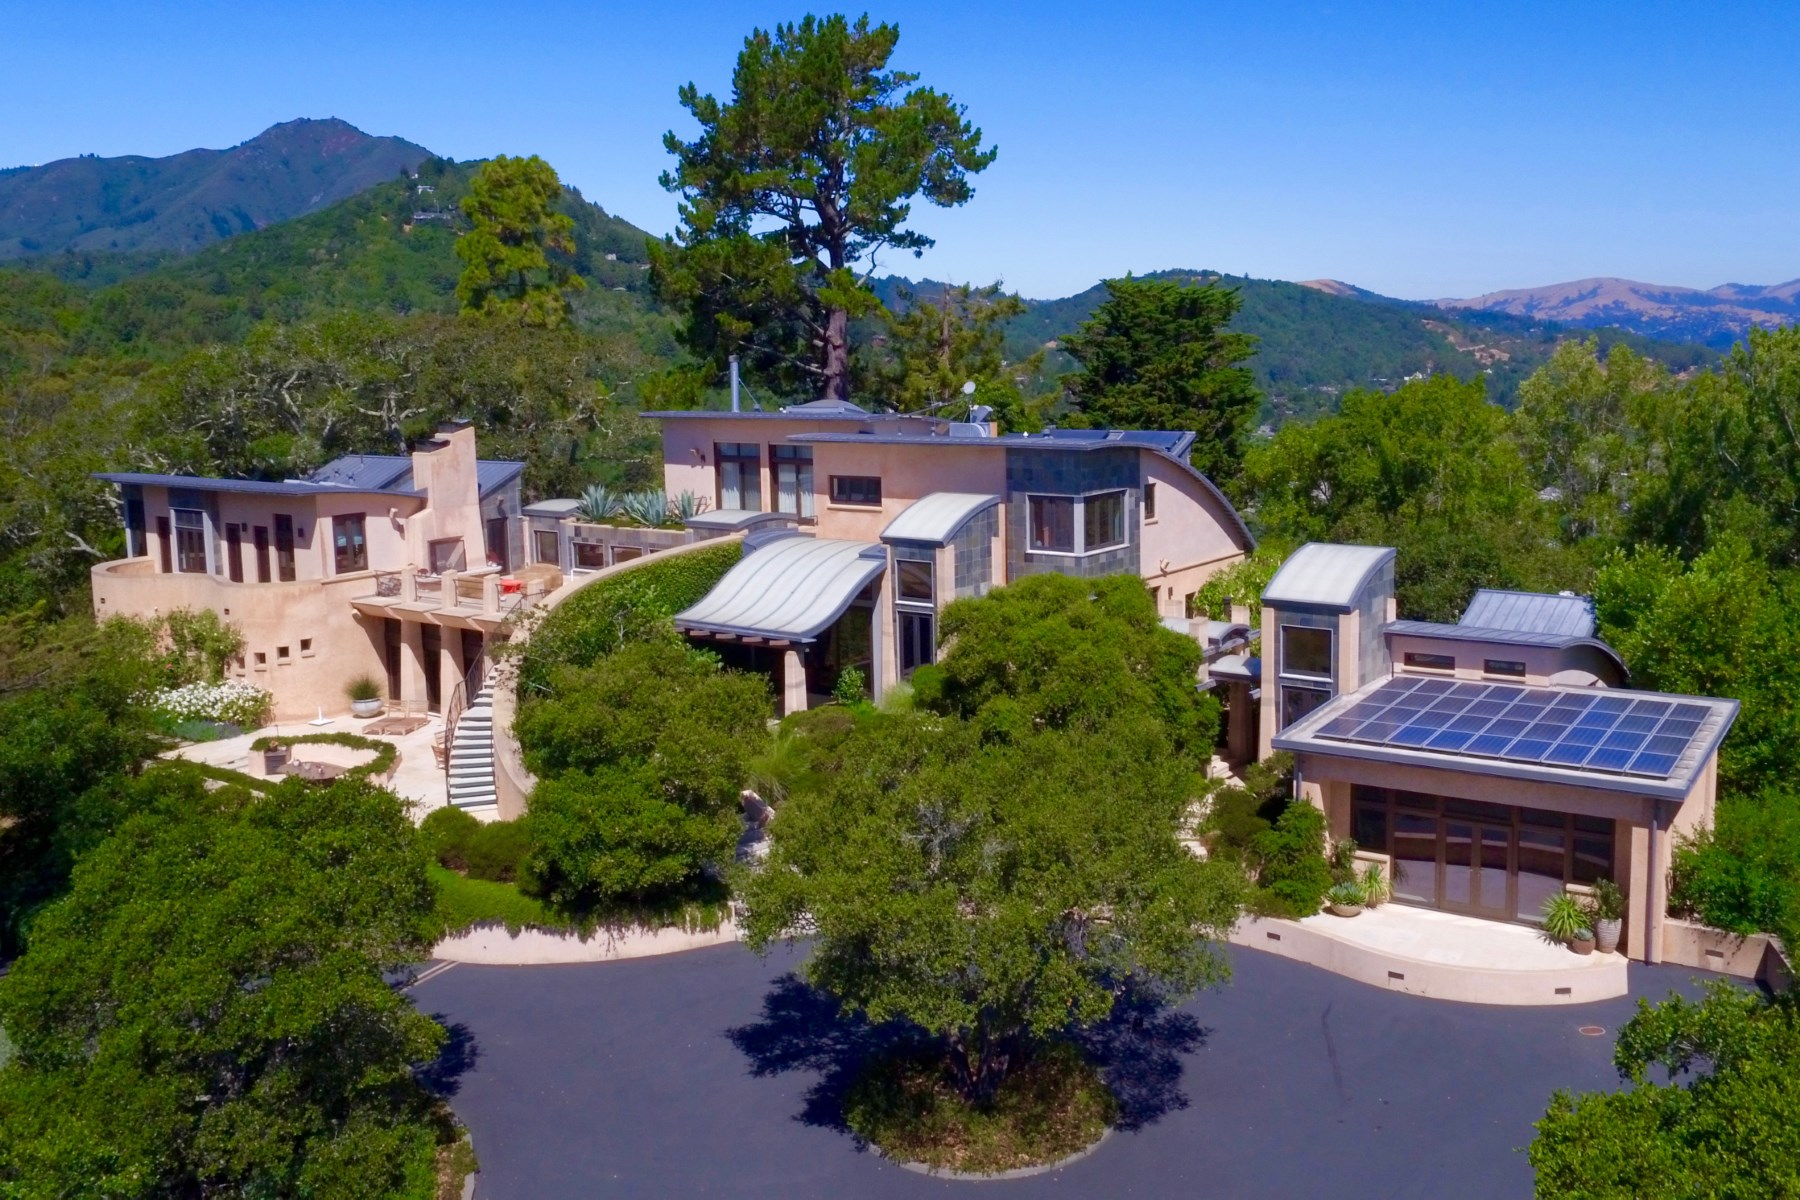 Single Family Home for Sale at Unprecedented Approx. 11-Acre Compound Corte Madera, California 94925 United States